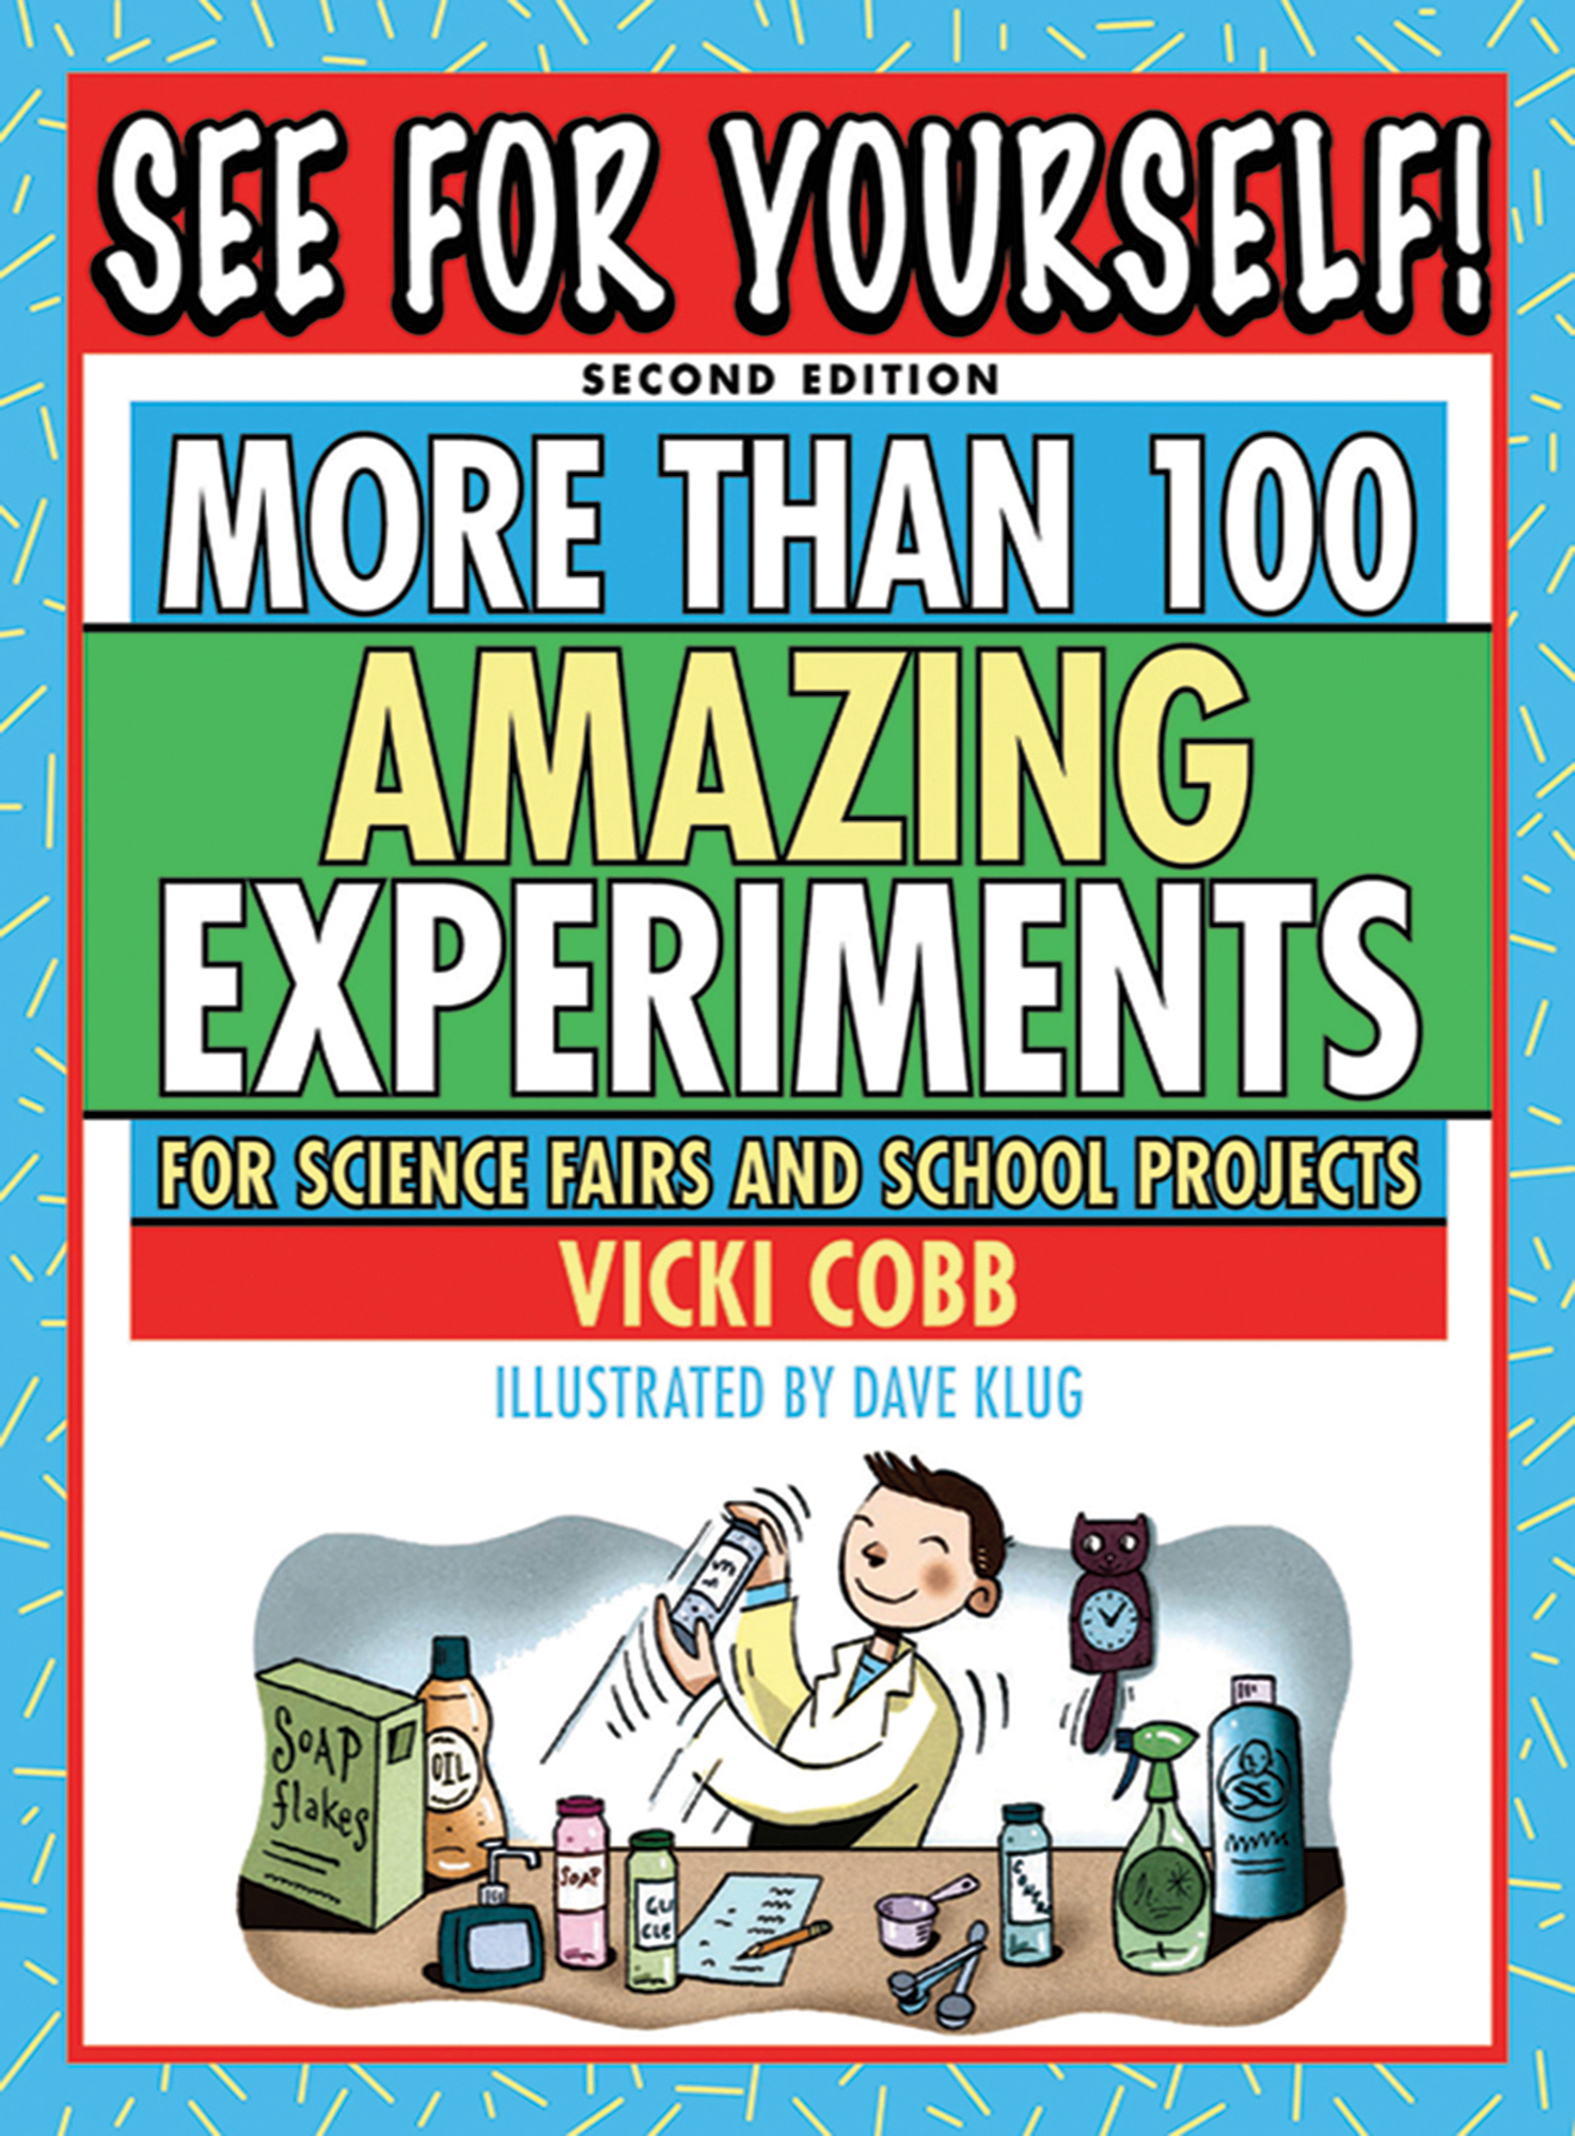 See for yourself : more than 100 amazing experiments for science fairs and school projects